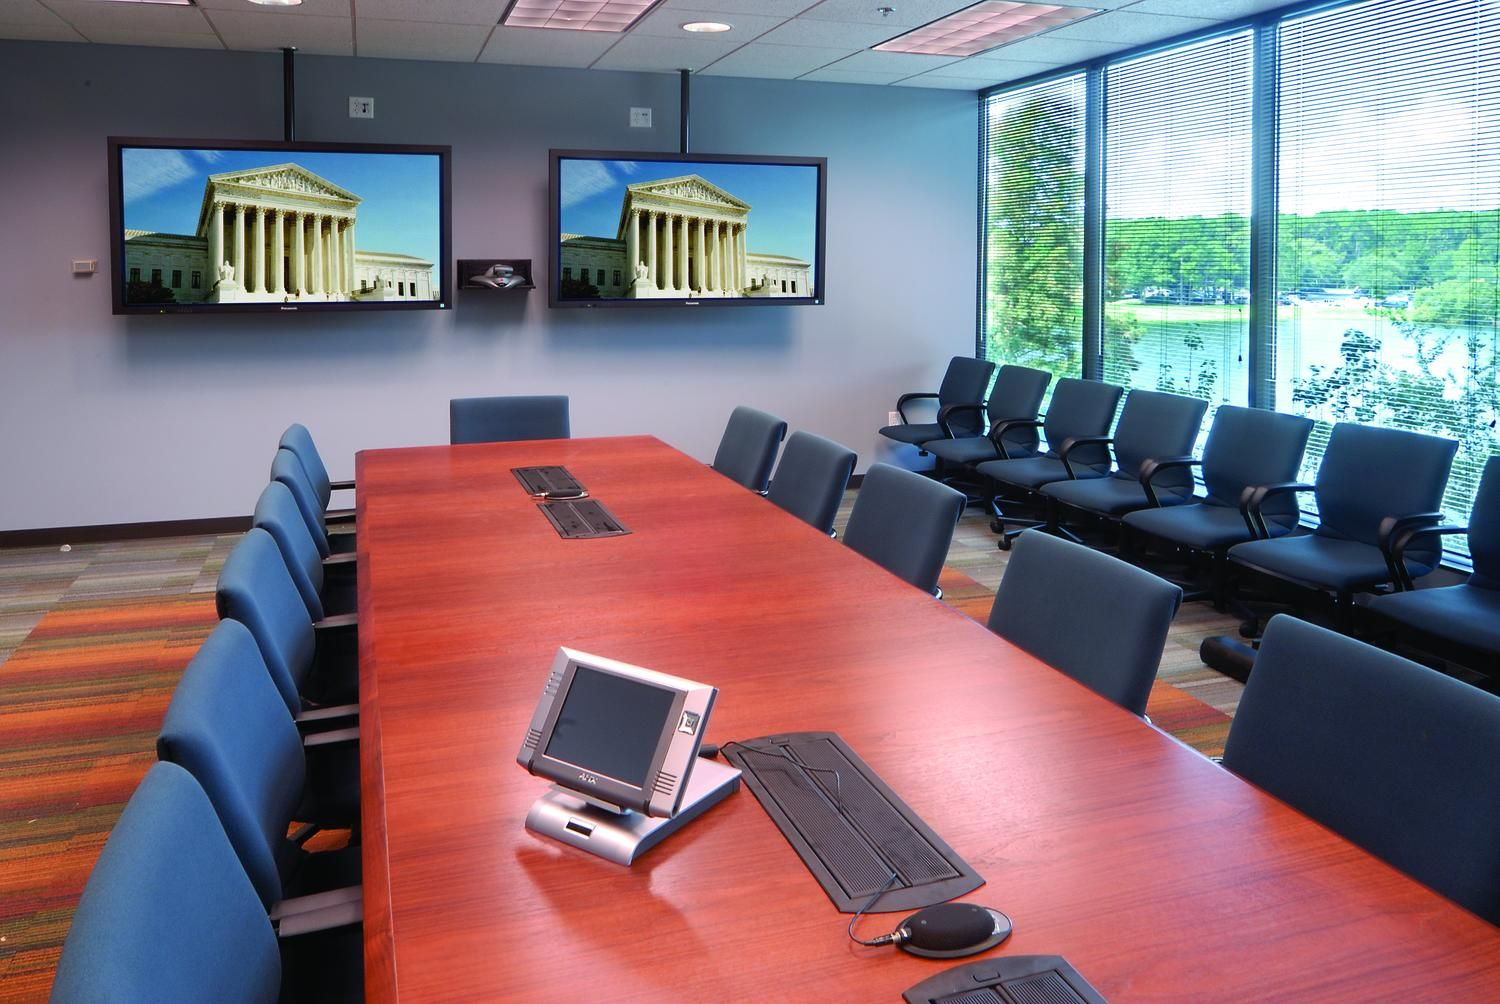 Double Flat Screens Mounted On The Wall In The Conference Room Flat Screen Mount Tv